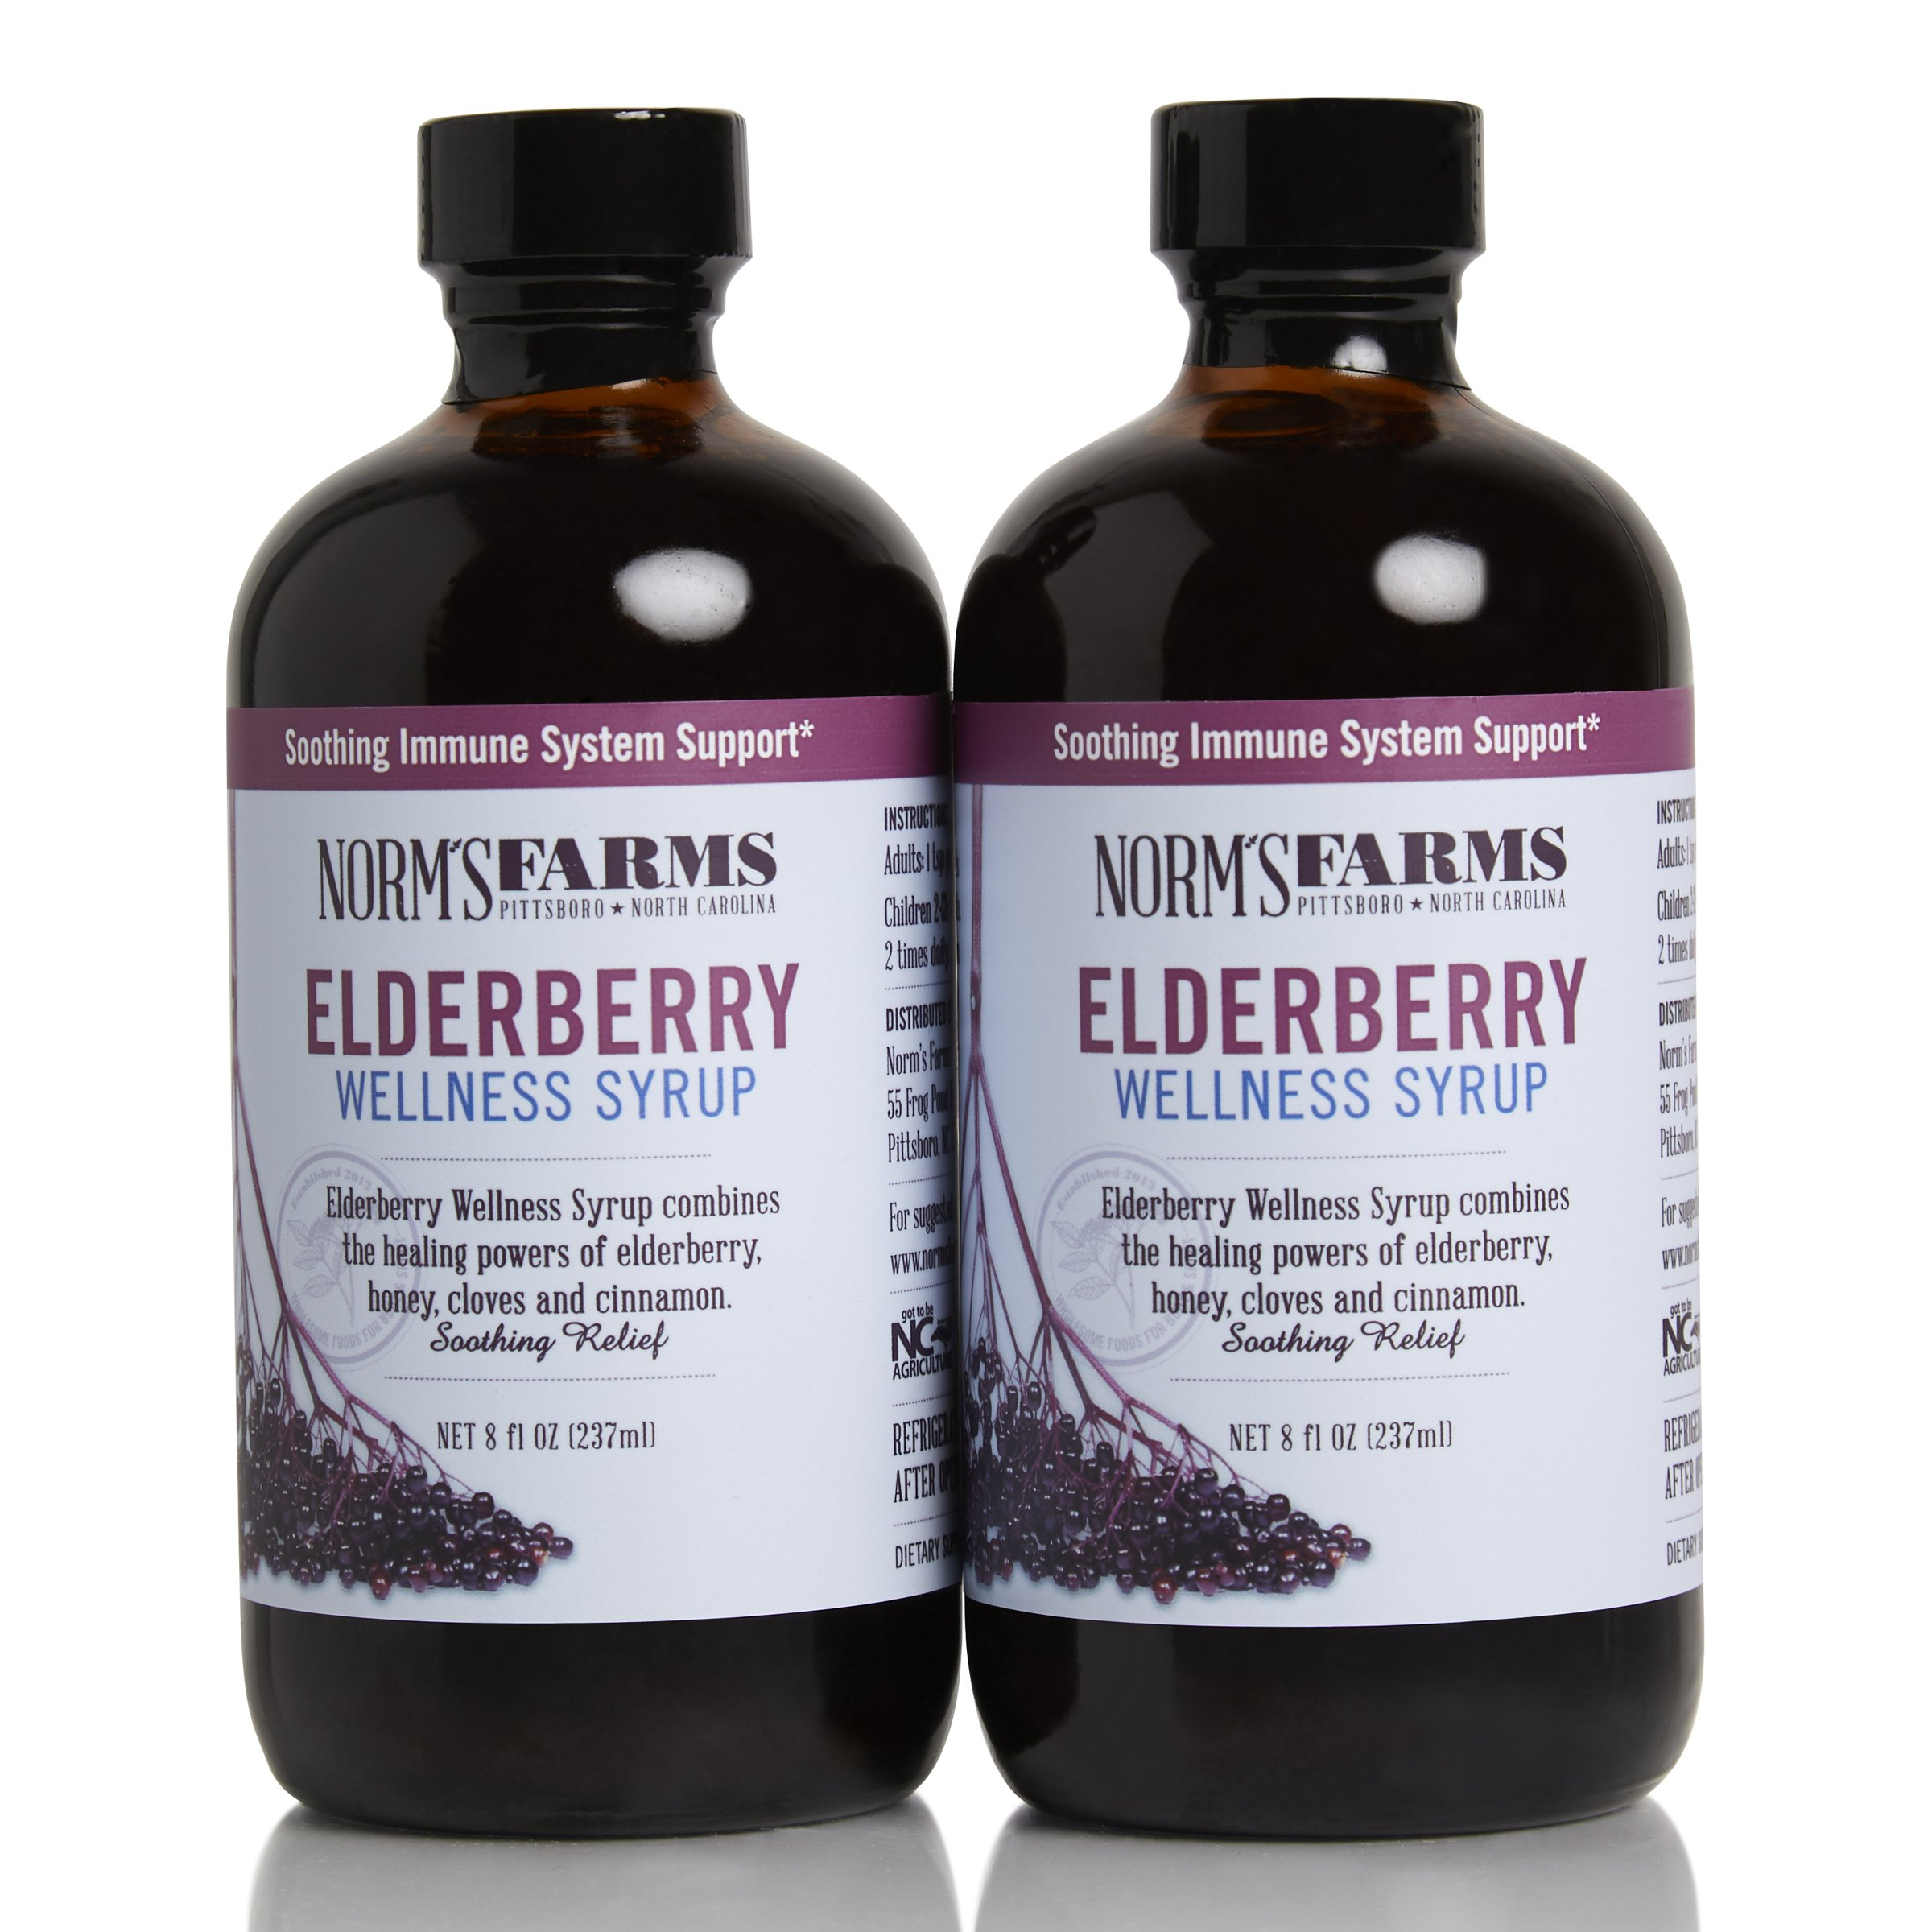 Norm's Farms Black Elderberry Wellness Syrup 8 Ounce Bottle, Pack of 2 by NORM'S FARMS